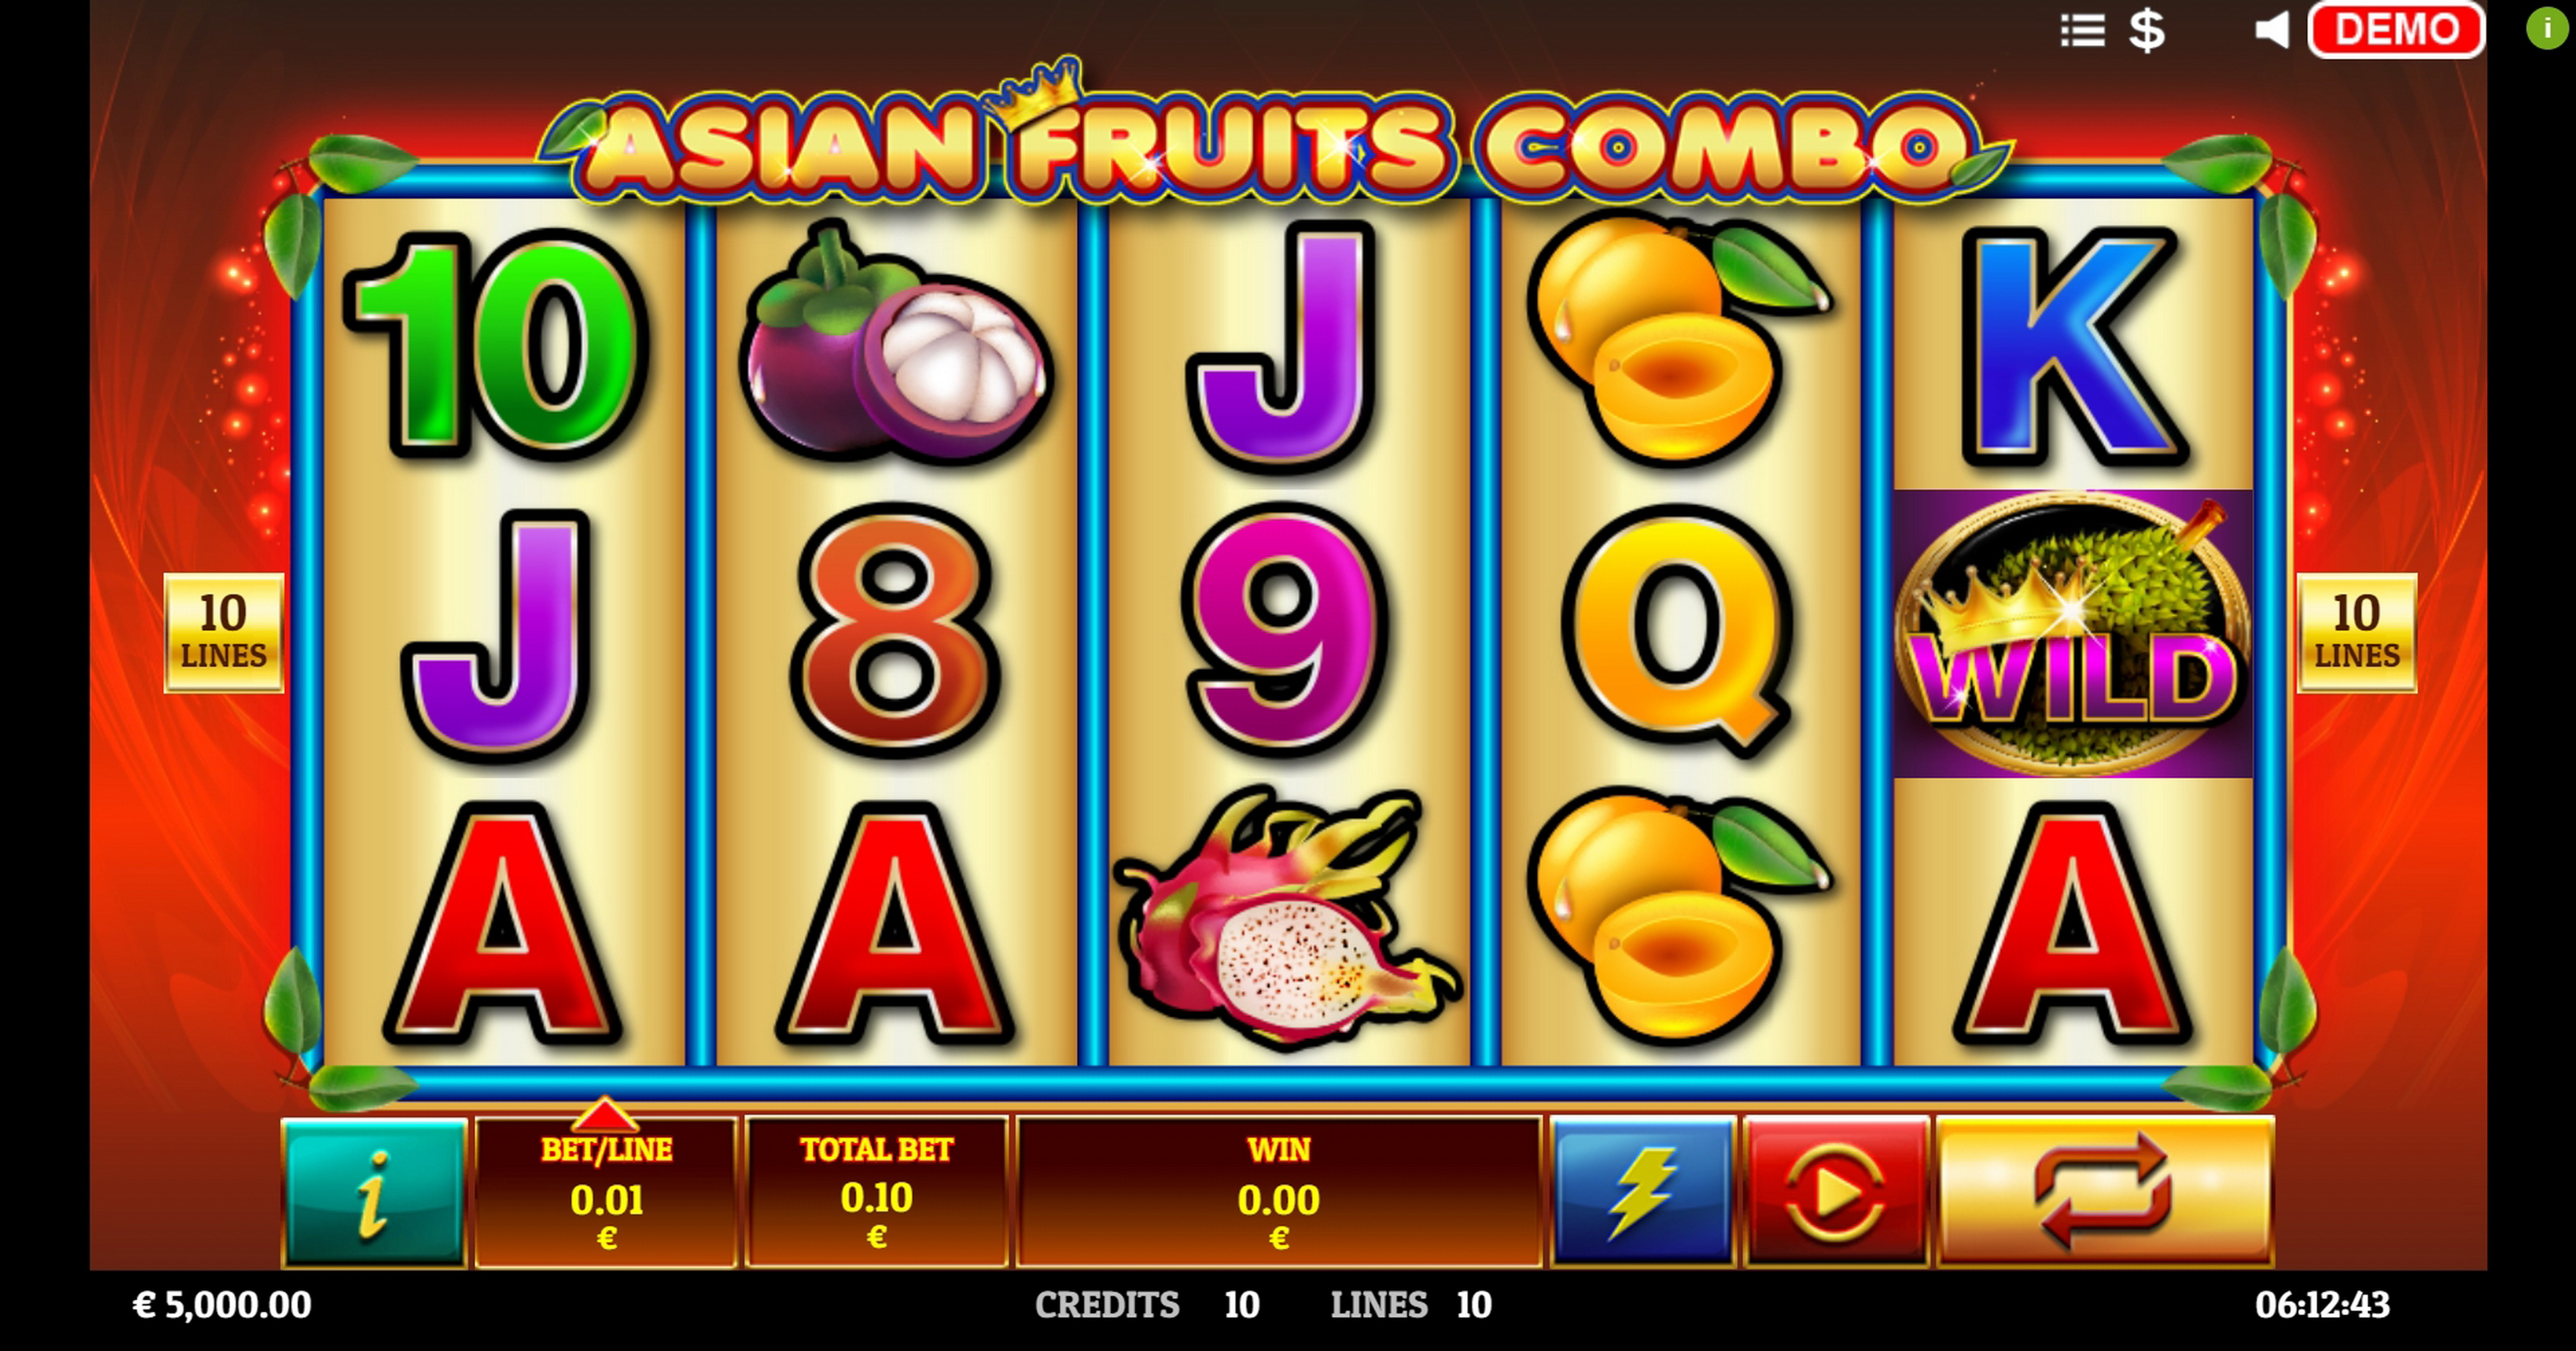 Play Asian Fruit Combo Free Casino Slot Game by Givme Games